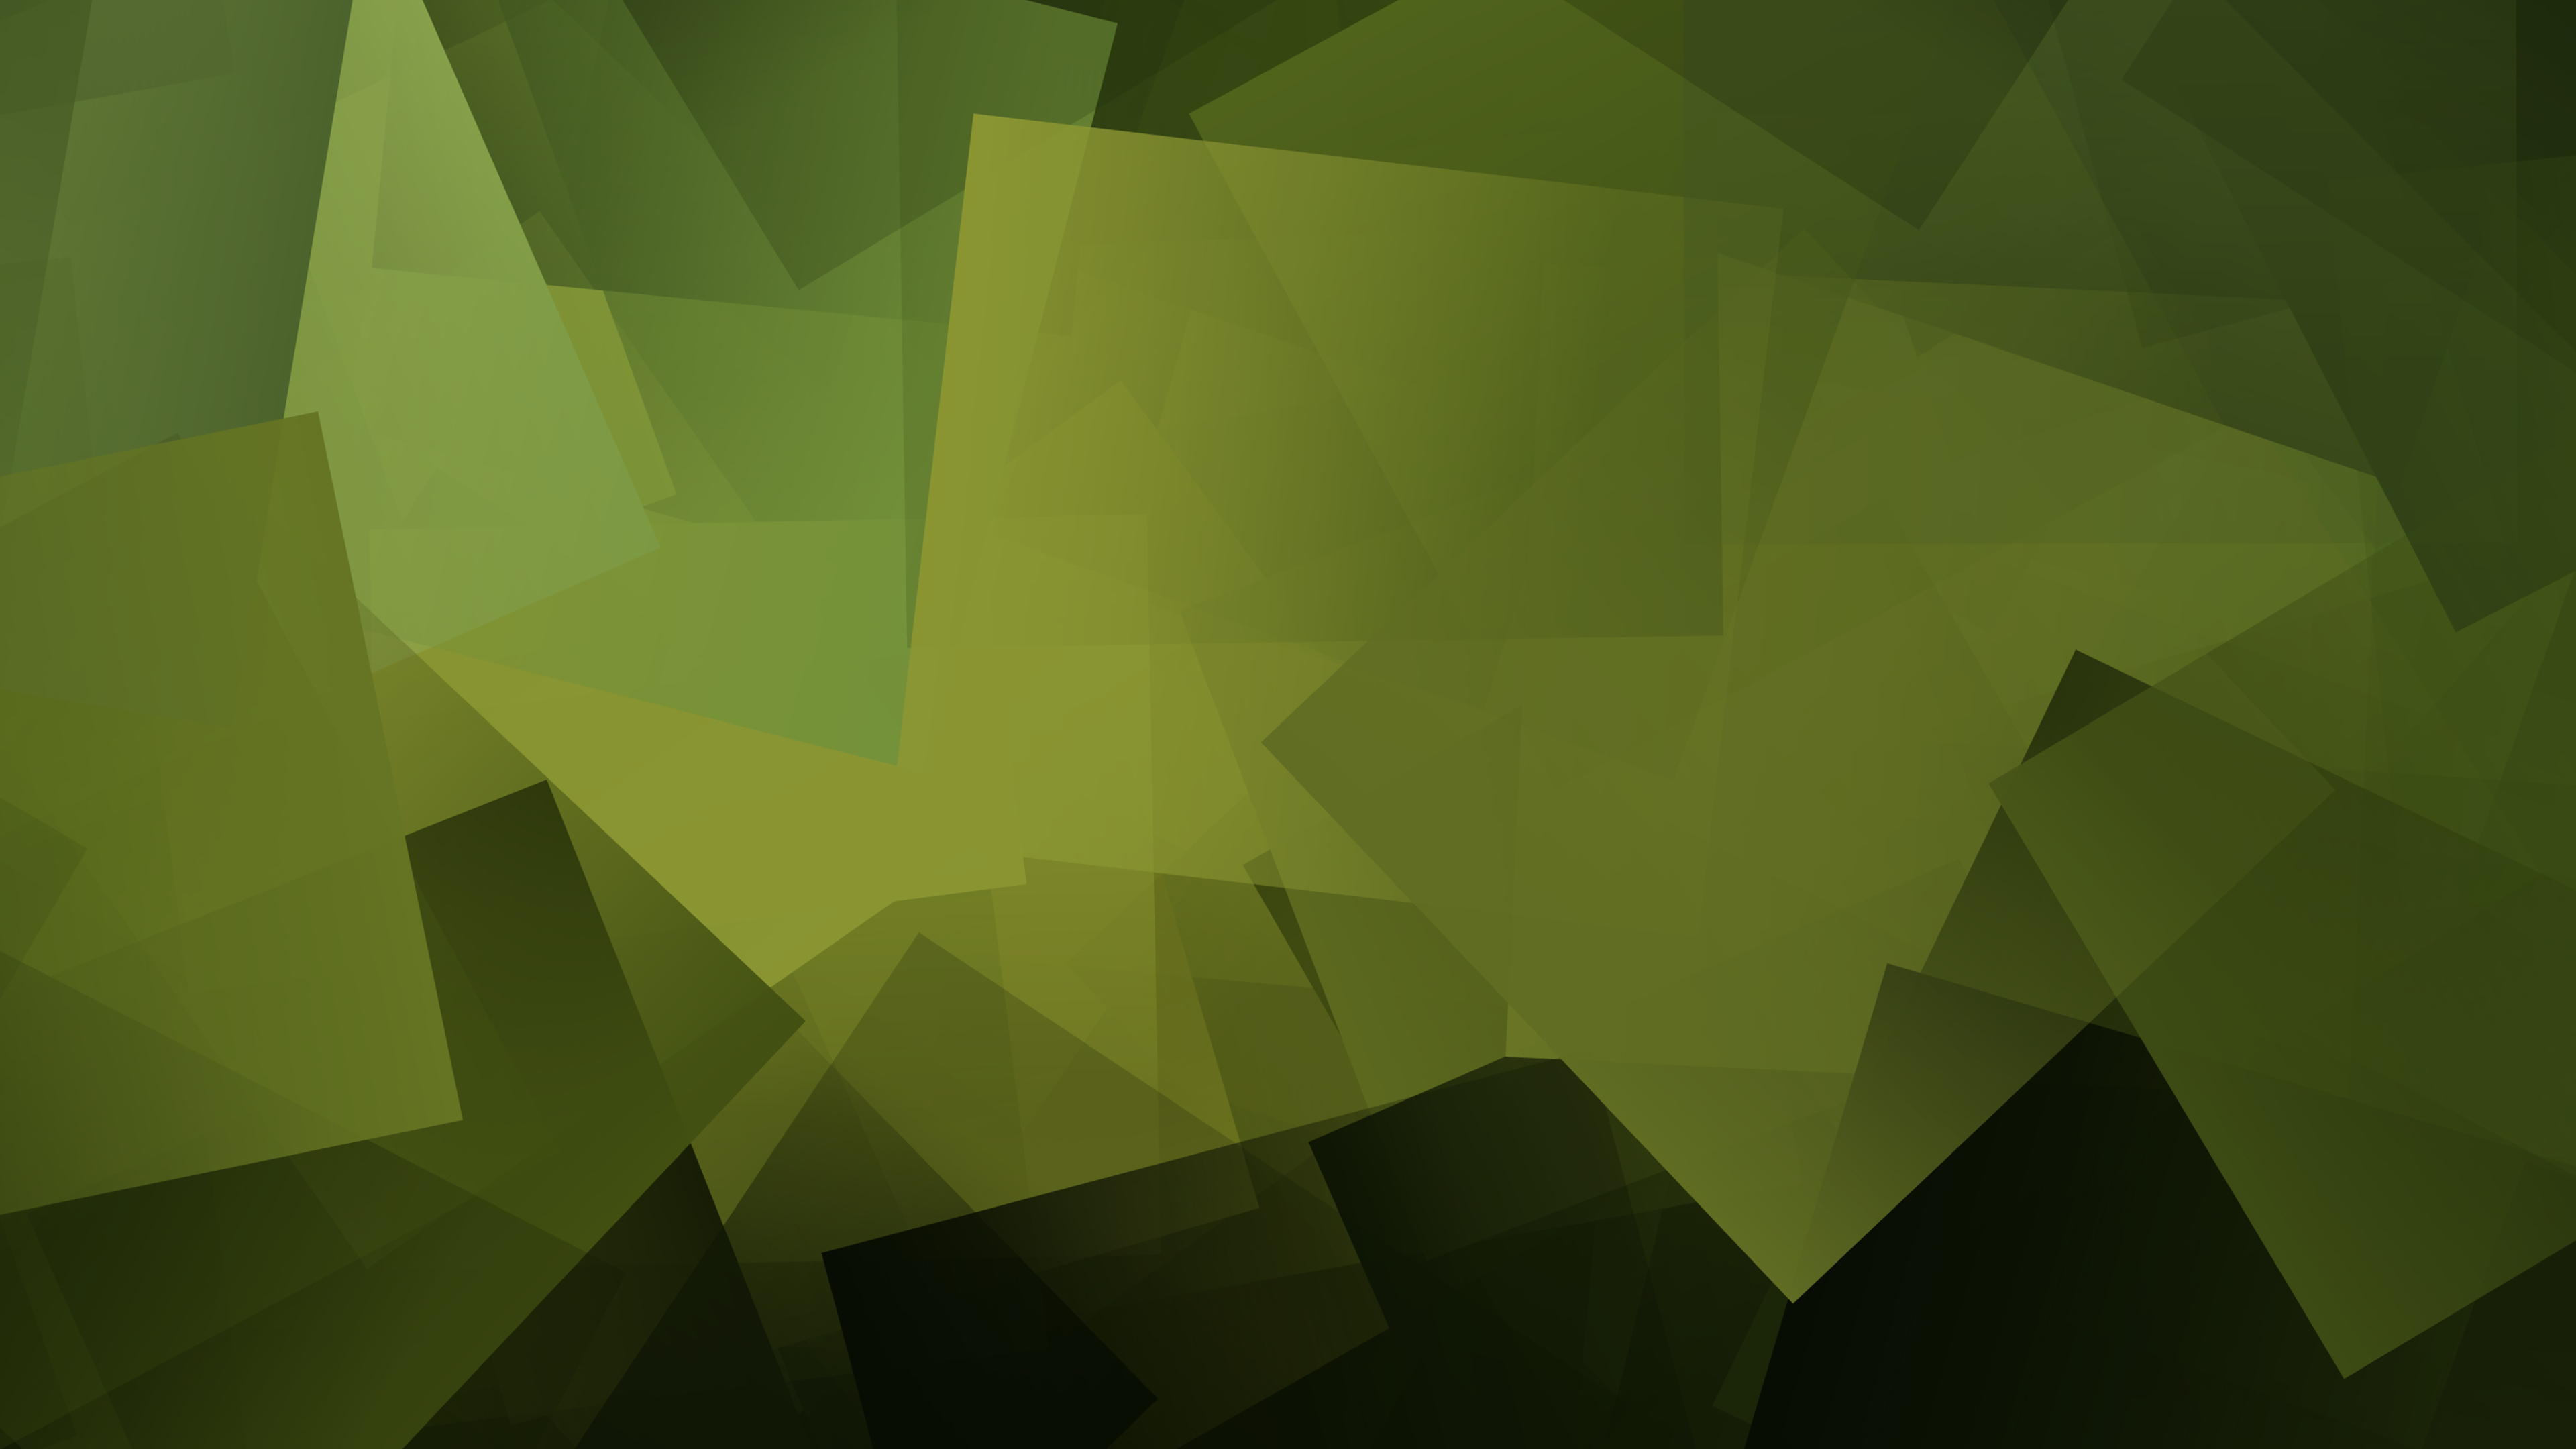 General 3840x2160 rave Linux cube square geometry gradient green